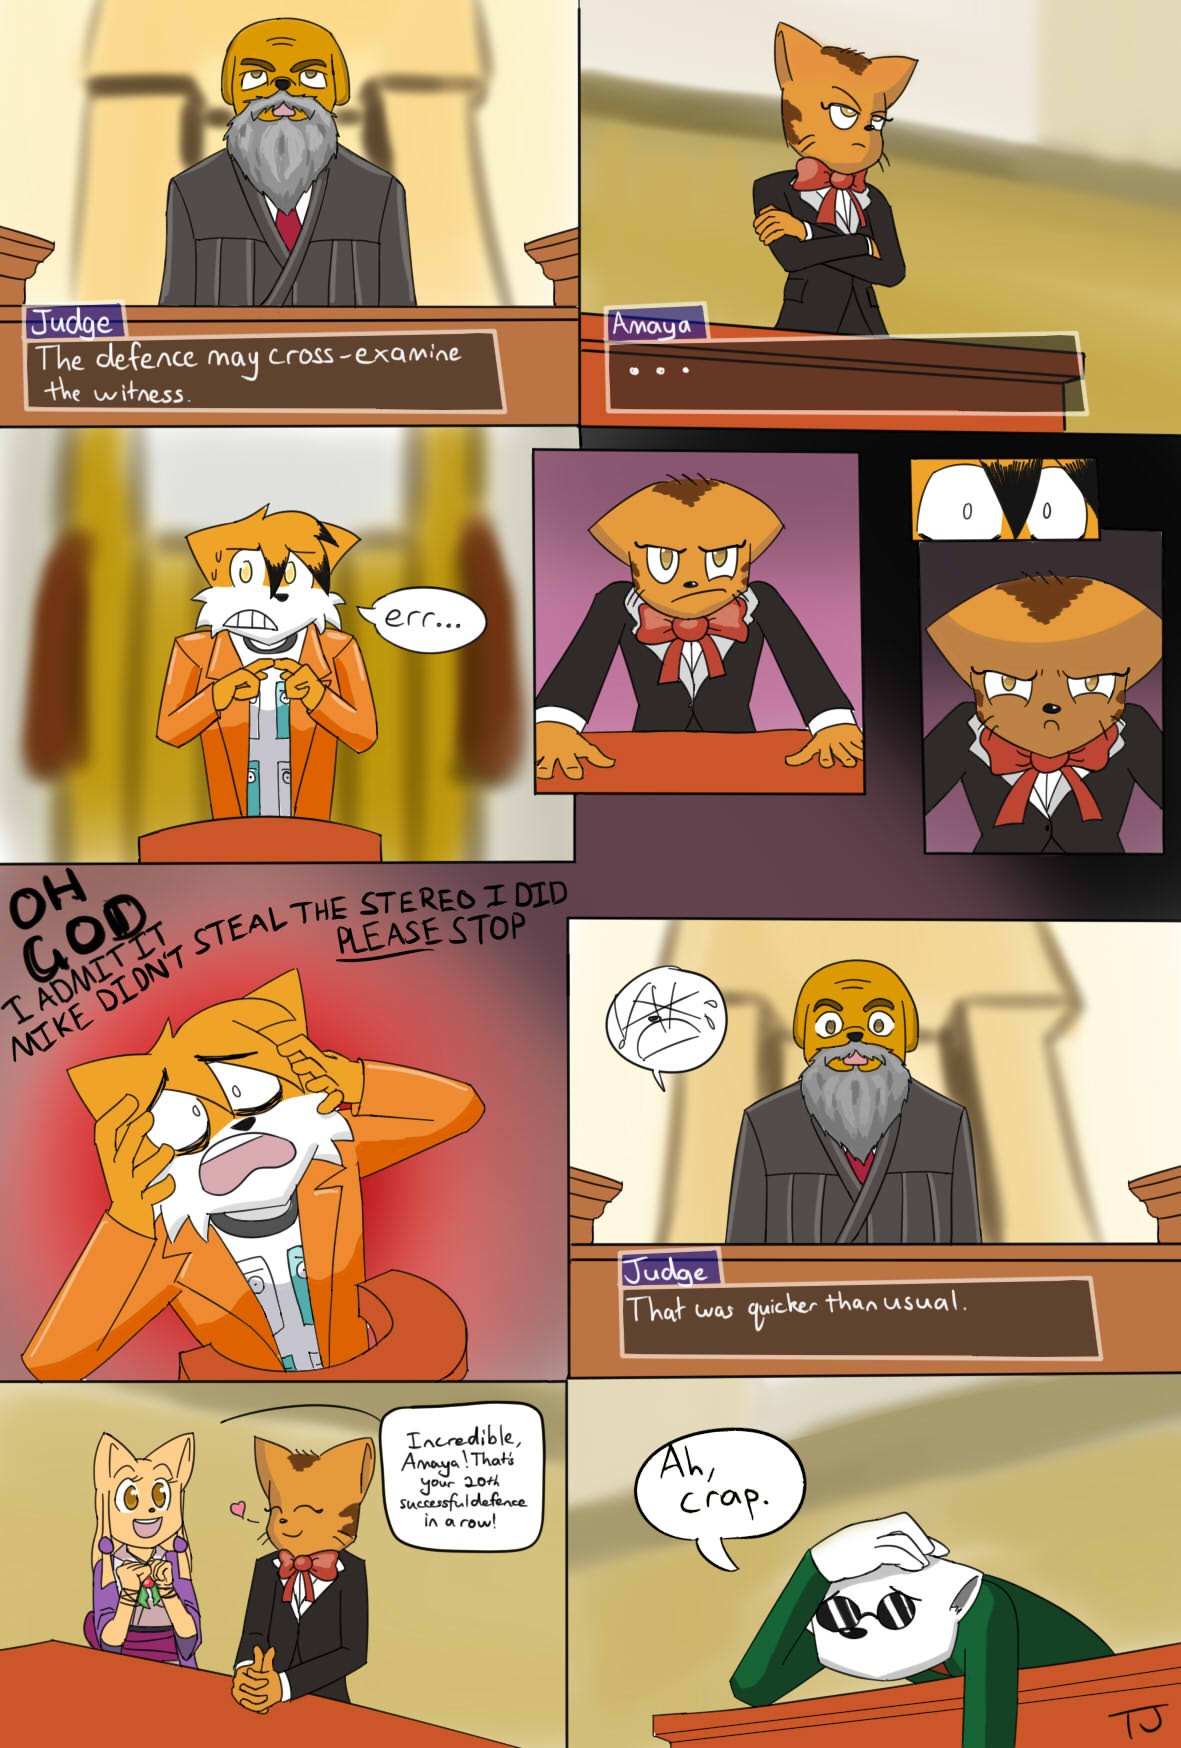 Candybooru image #8213, tagged with Amaya David McCain Paulo Sue TJ_(Artist) comic